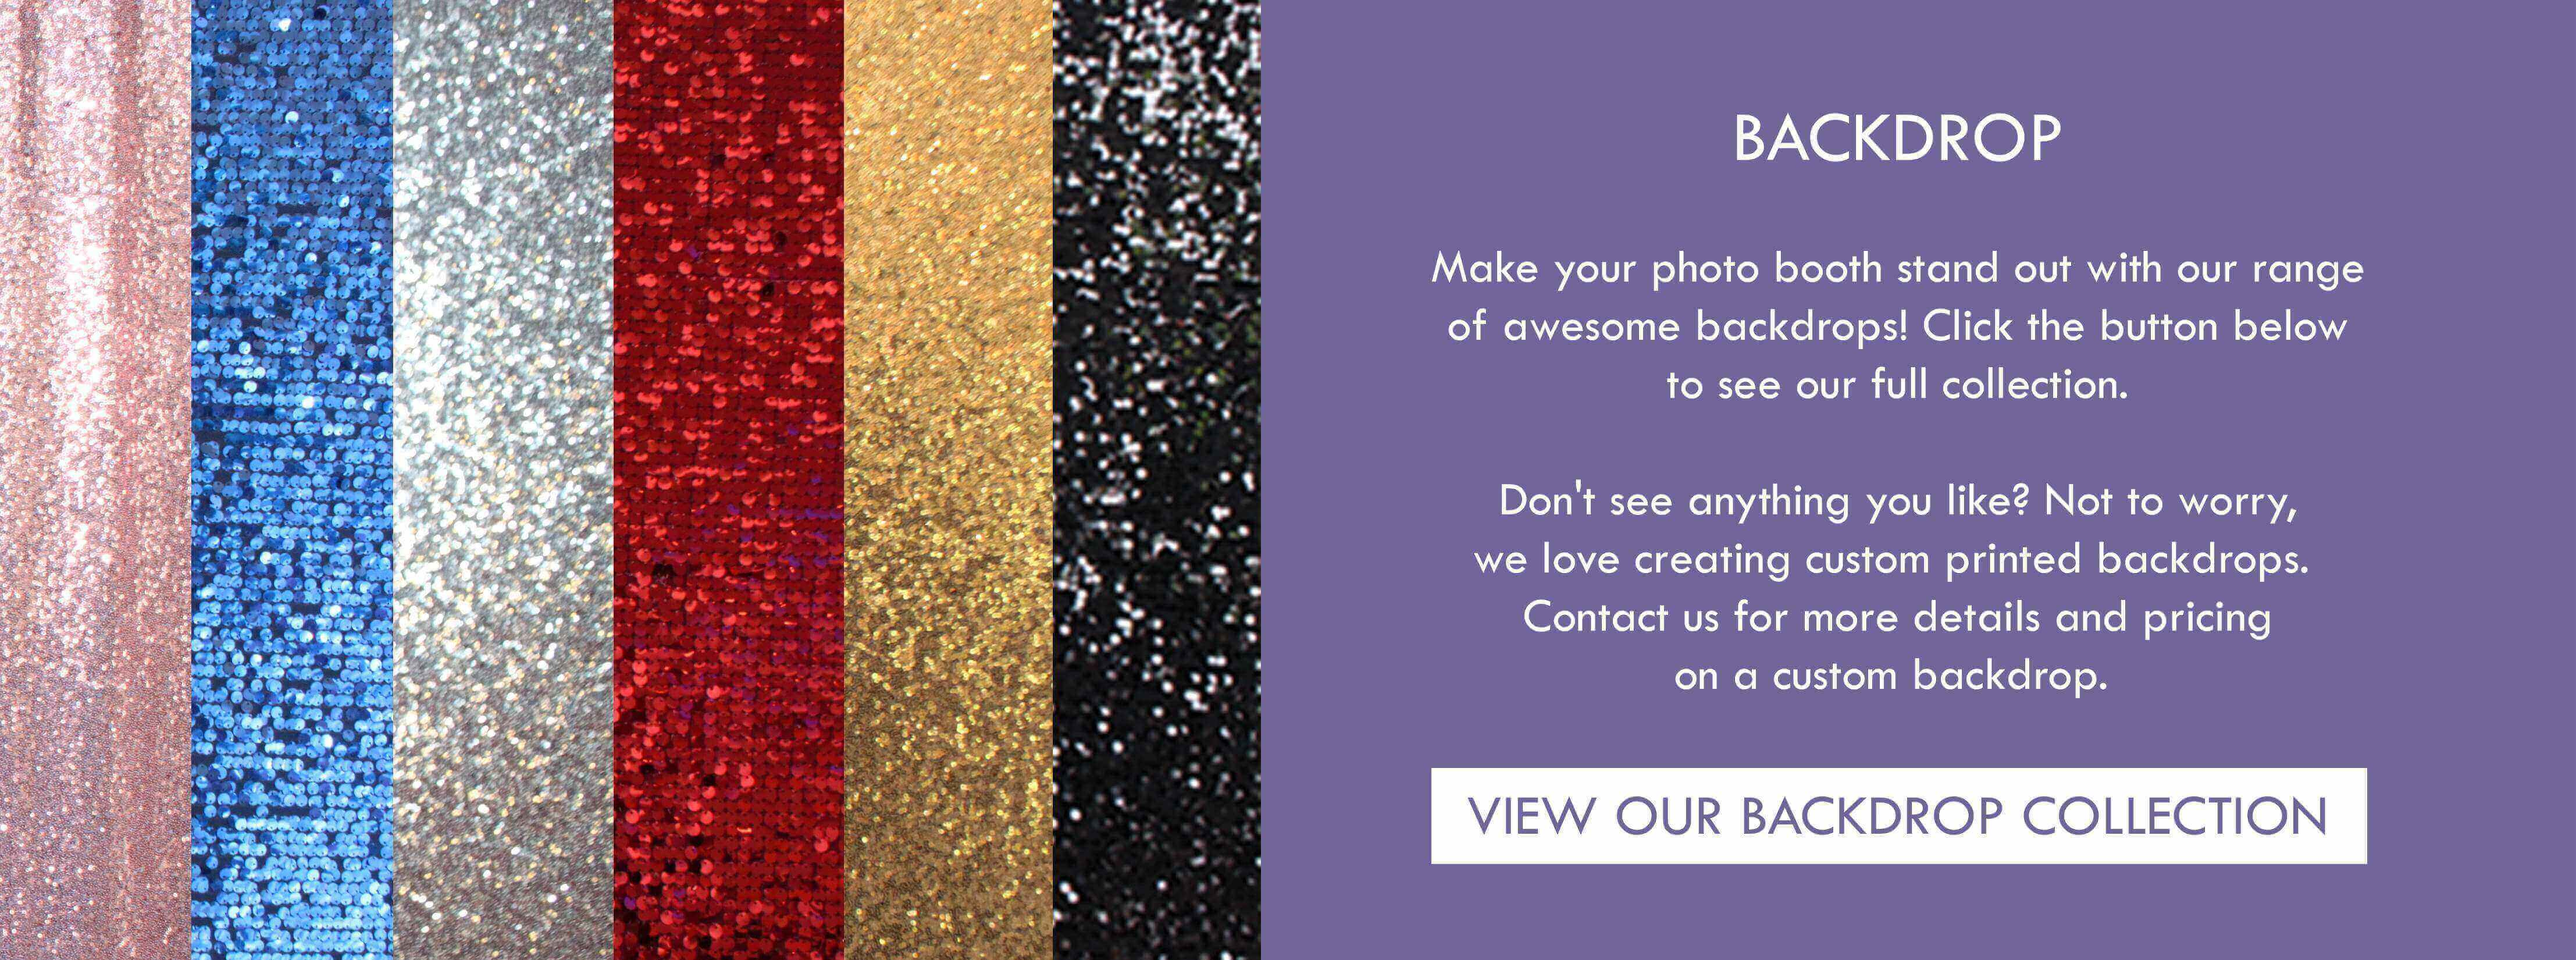 Make your photo booth stand out with our range of awesome backdrops! Click the button below to see our full collection.  Don't see anything you like? Not to worry, we love creating custom printed backdrops.  Contact us for more details and pricing on a custom backdrop.